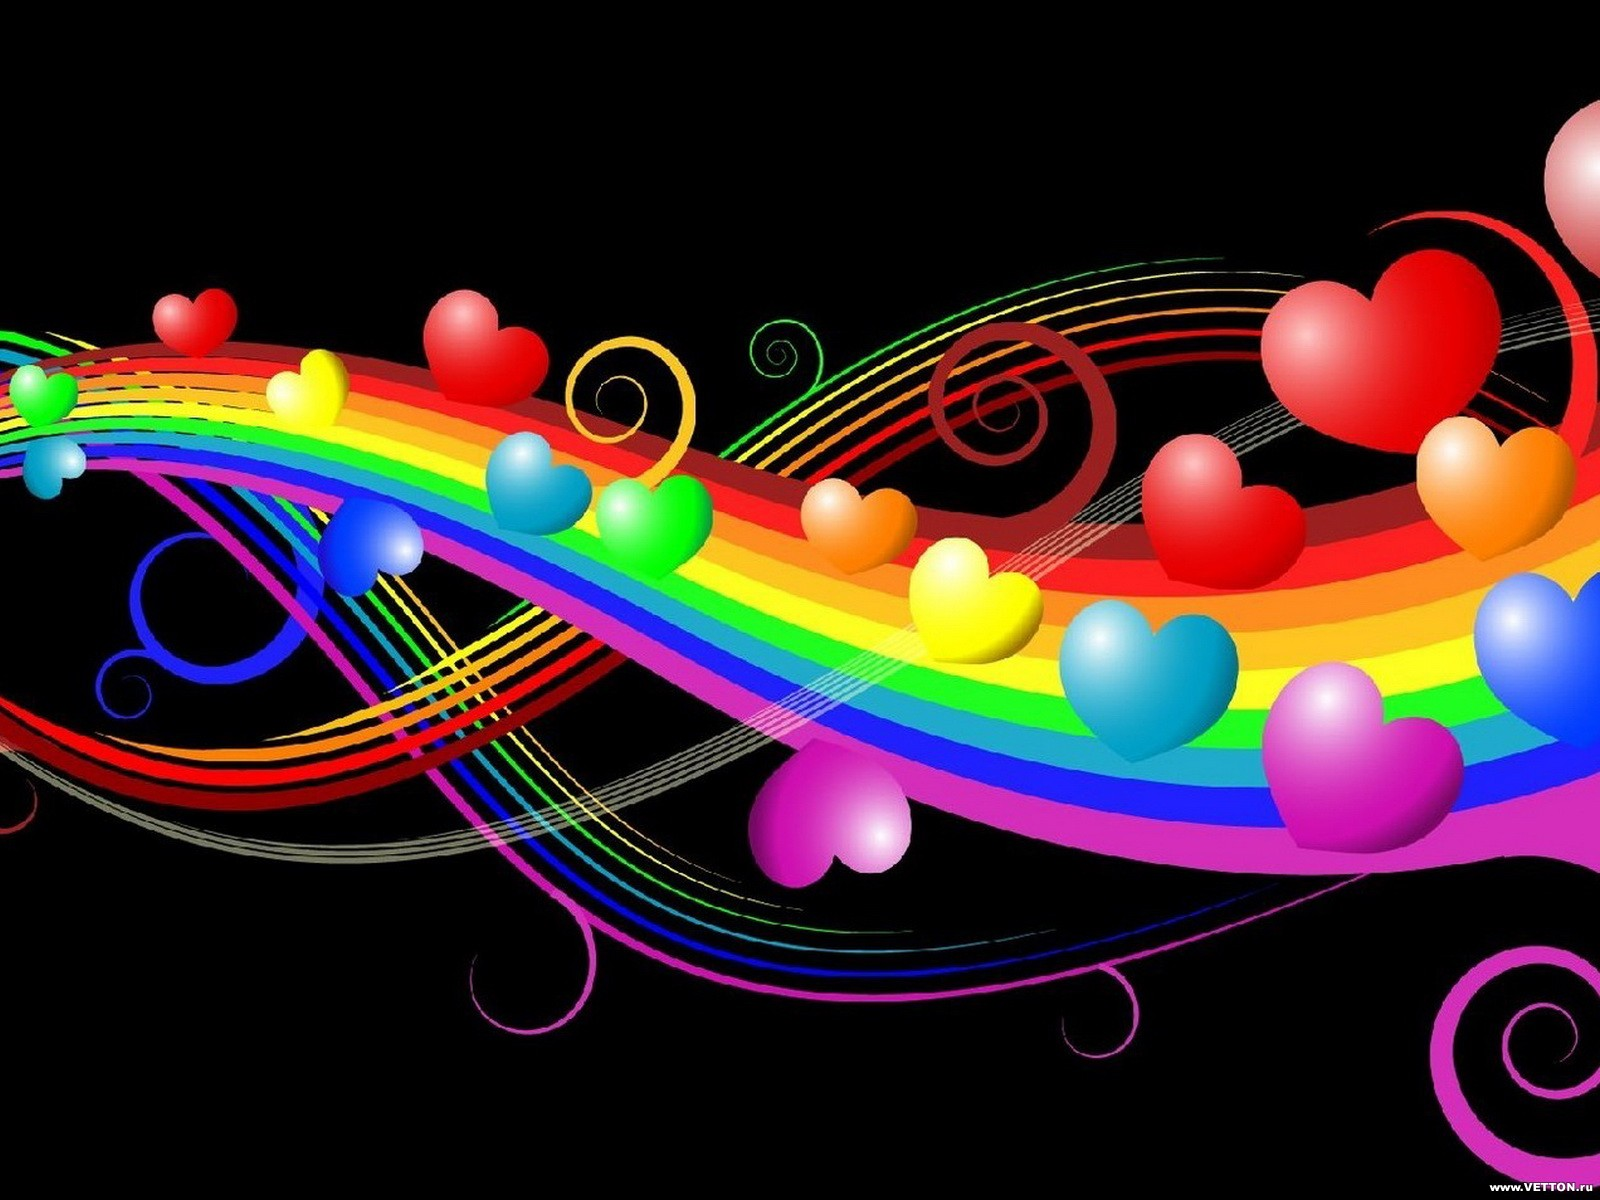 Pretty Colorful Backgrounds hd wallpaper background desktop 1600x1200